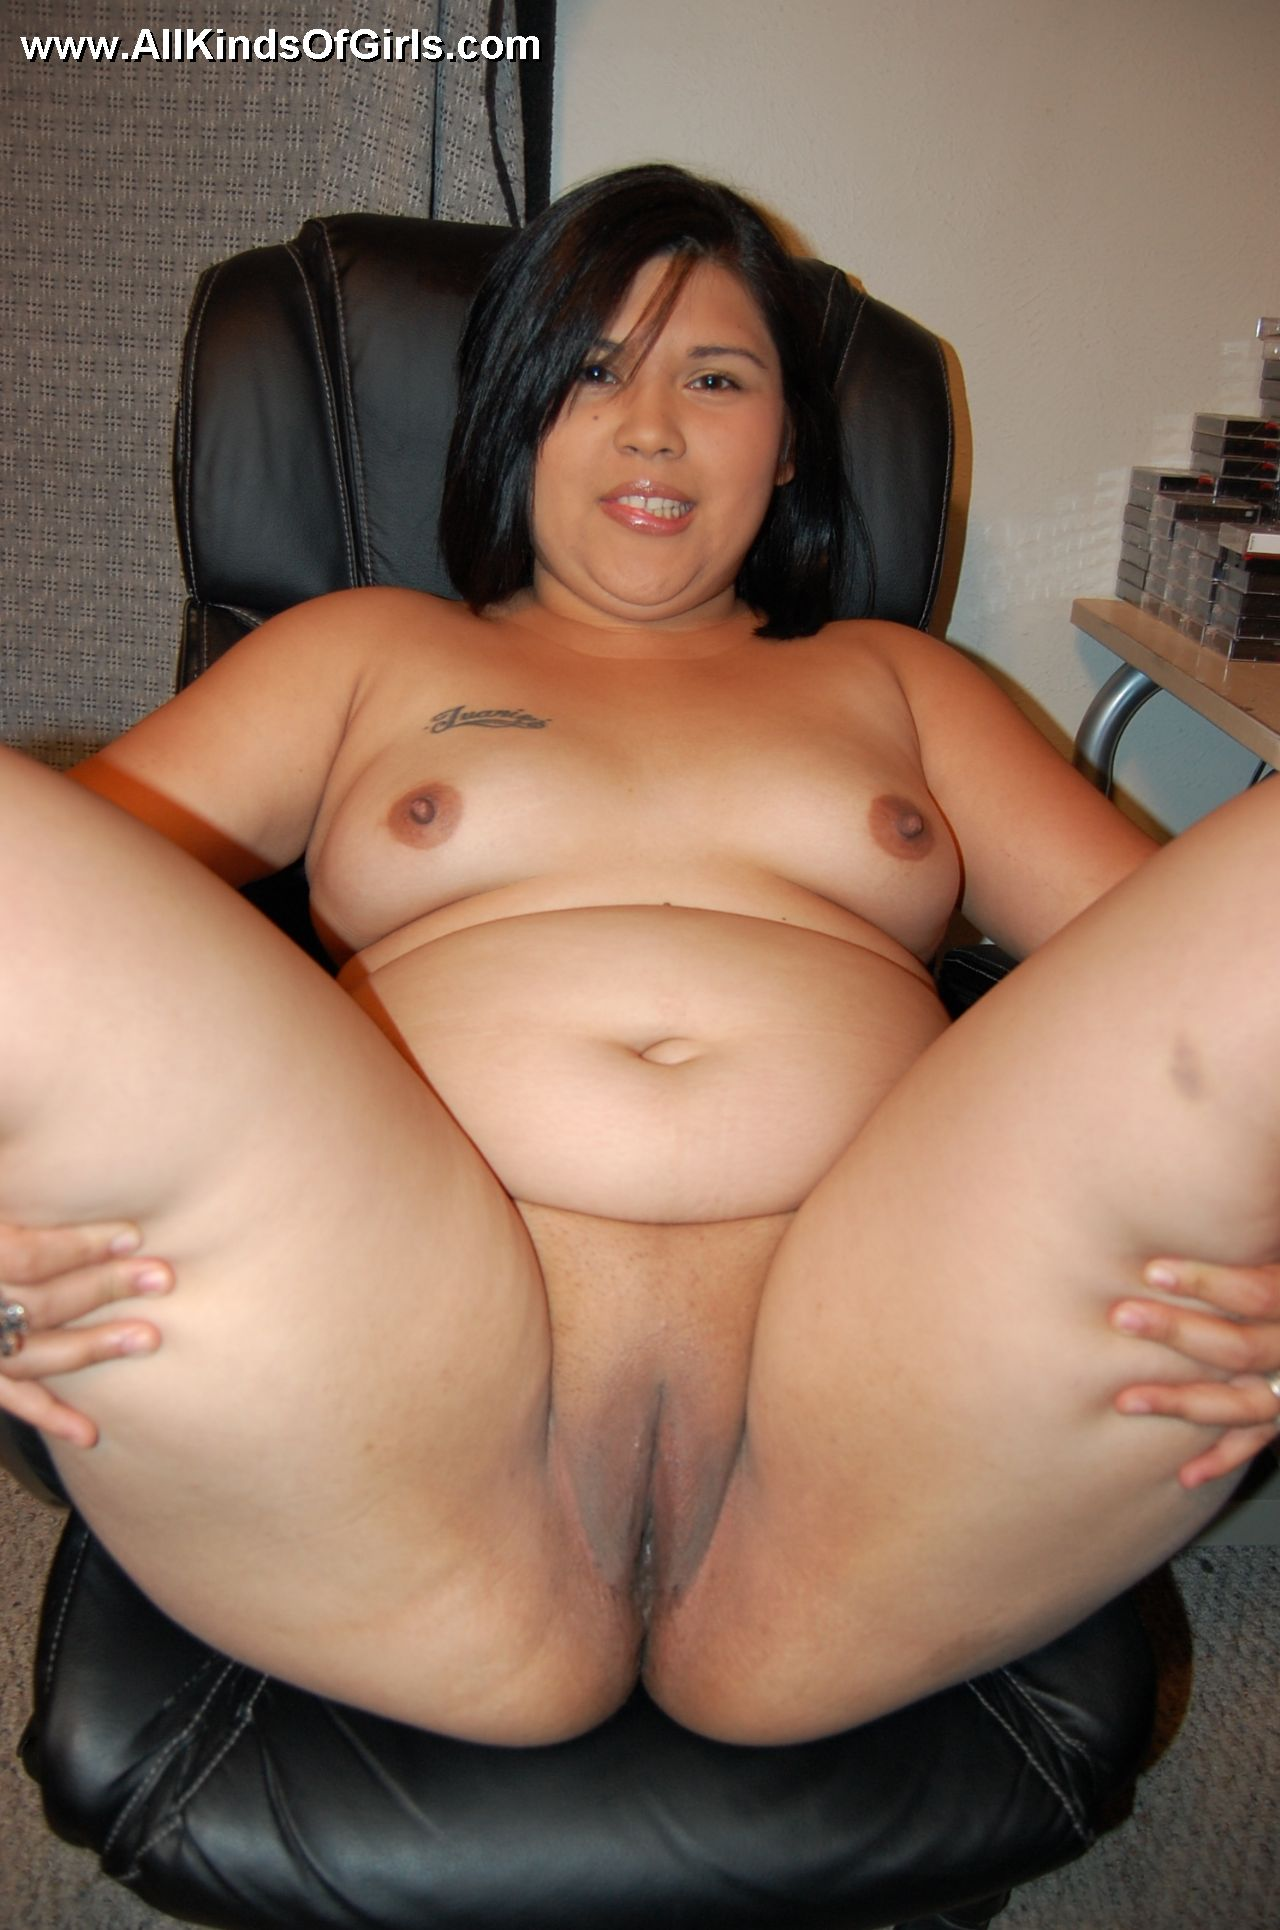 nudes gallery Asian chubby